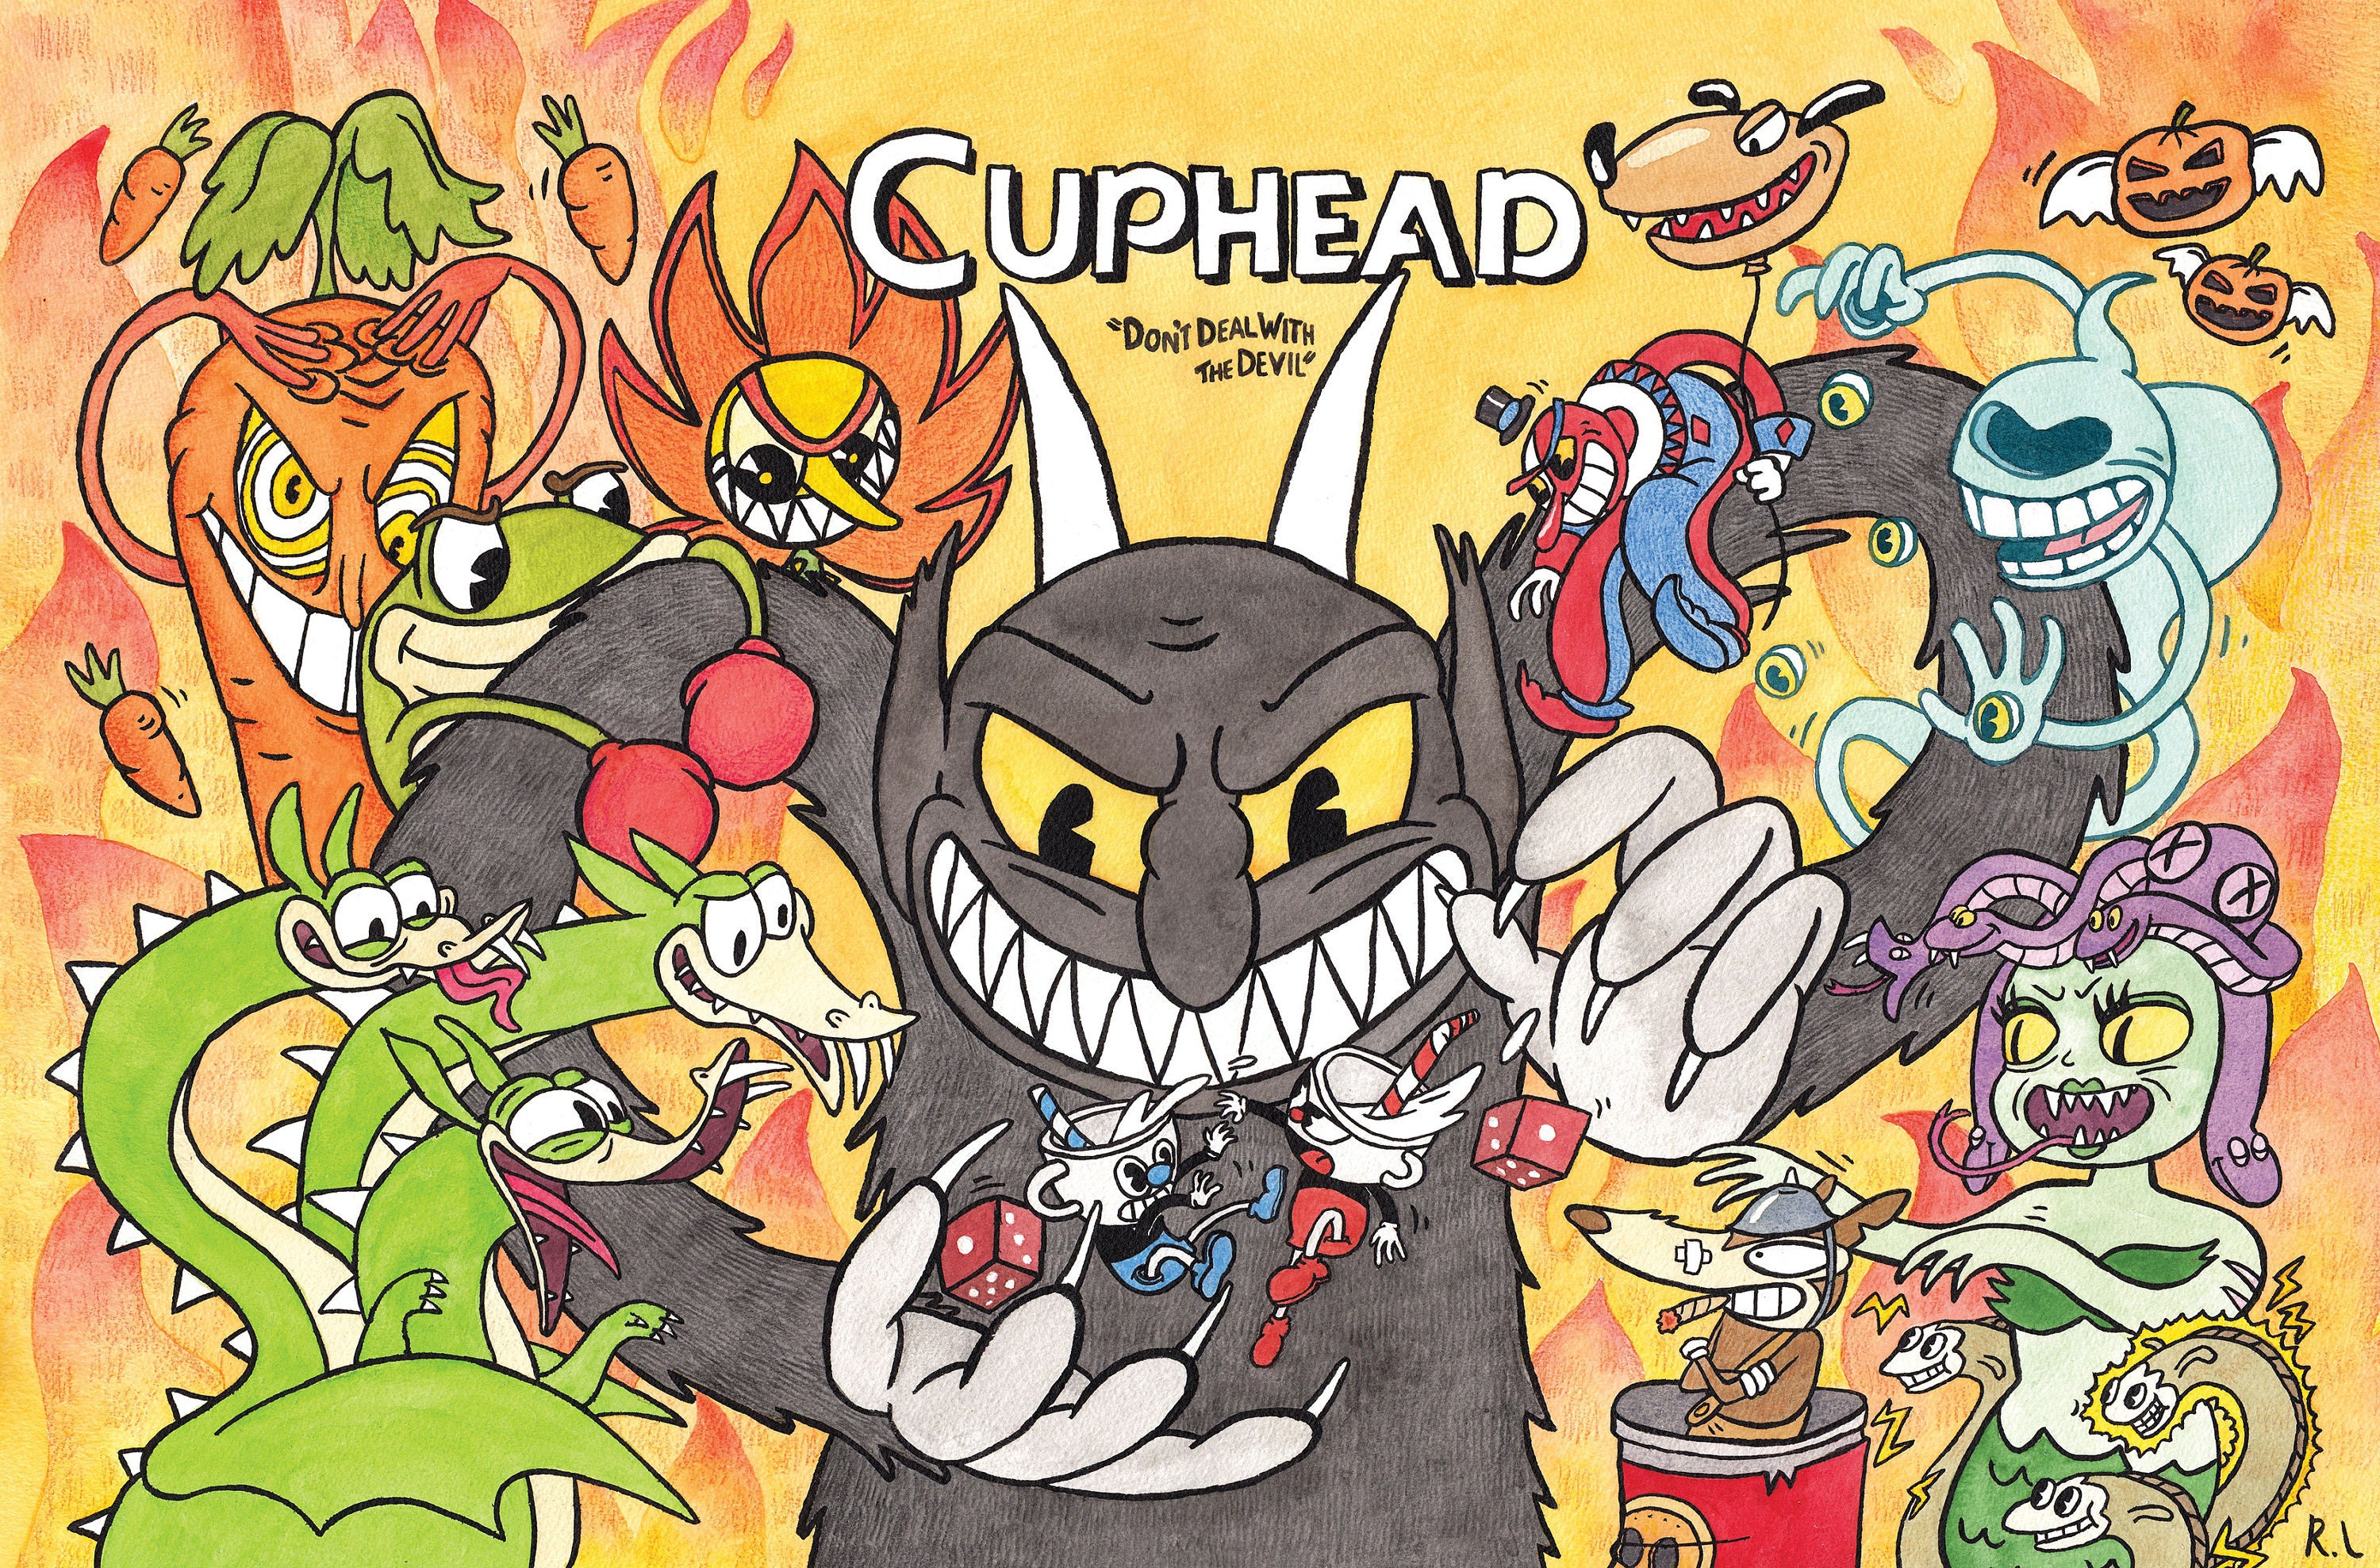 Cuphead Indie Videogame Poster featuring the Devil Cuphead